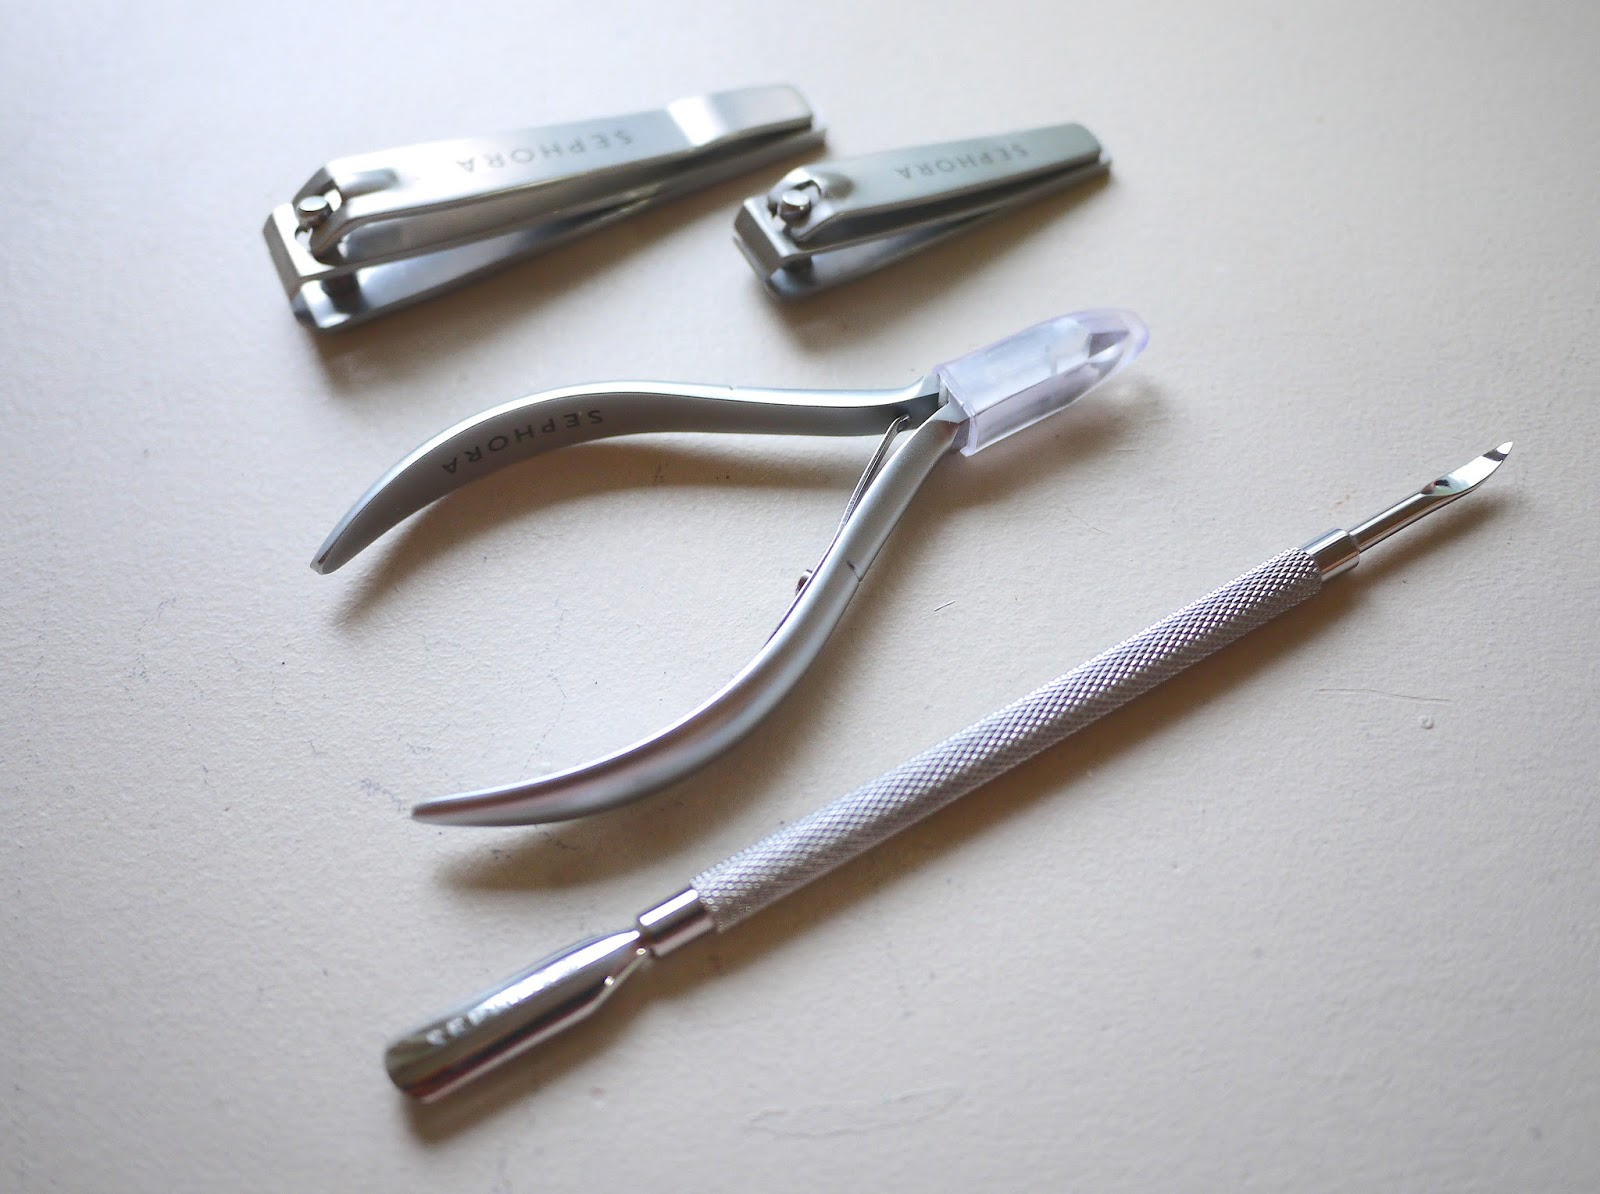 sephora nail and manicure tools review